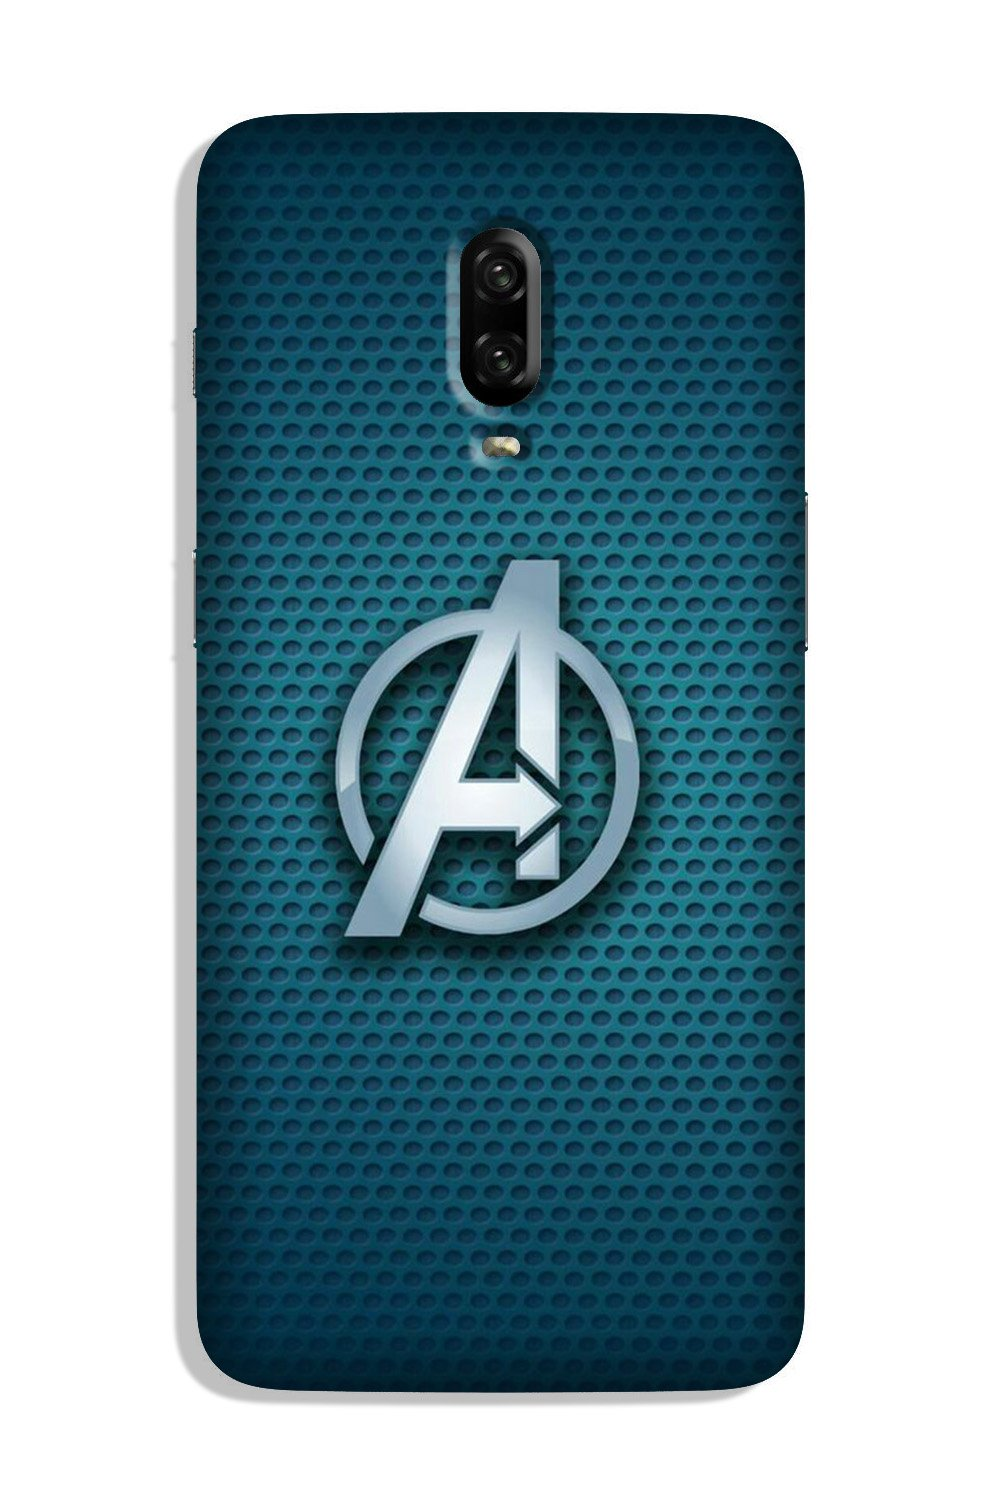 Avengers Case for OnePlus 6T (Design No. 246)